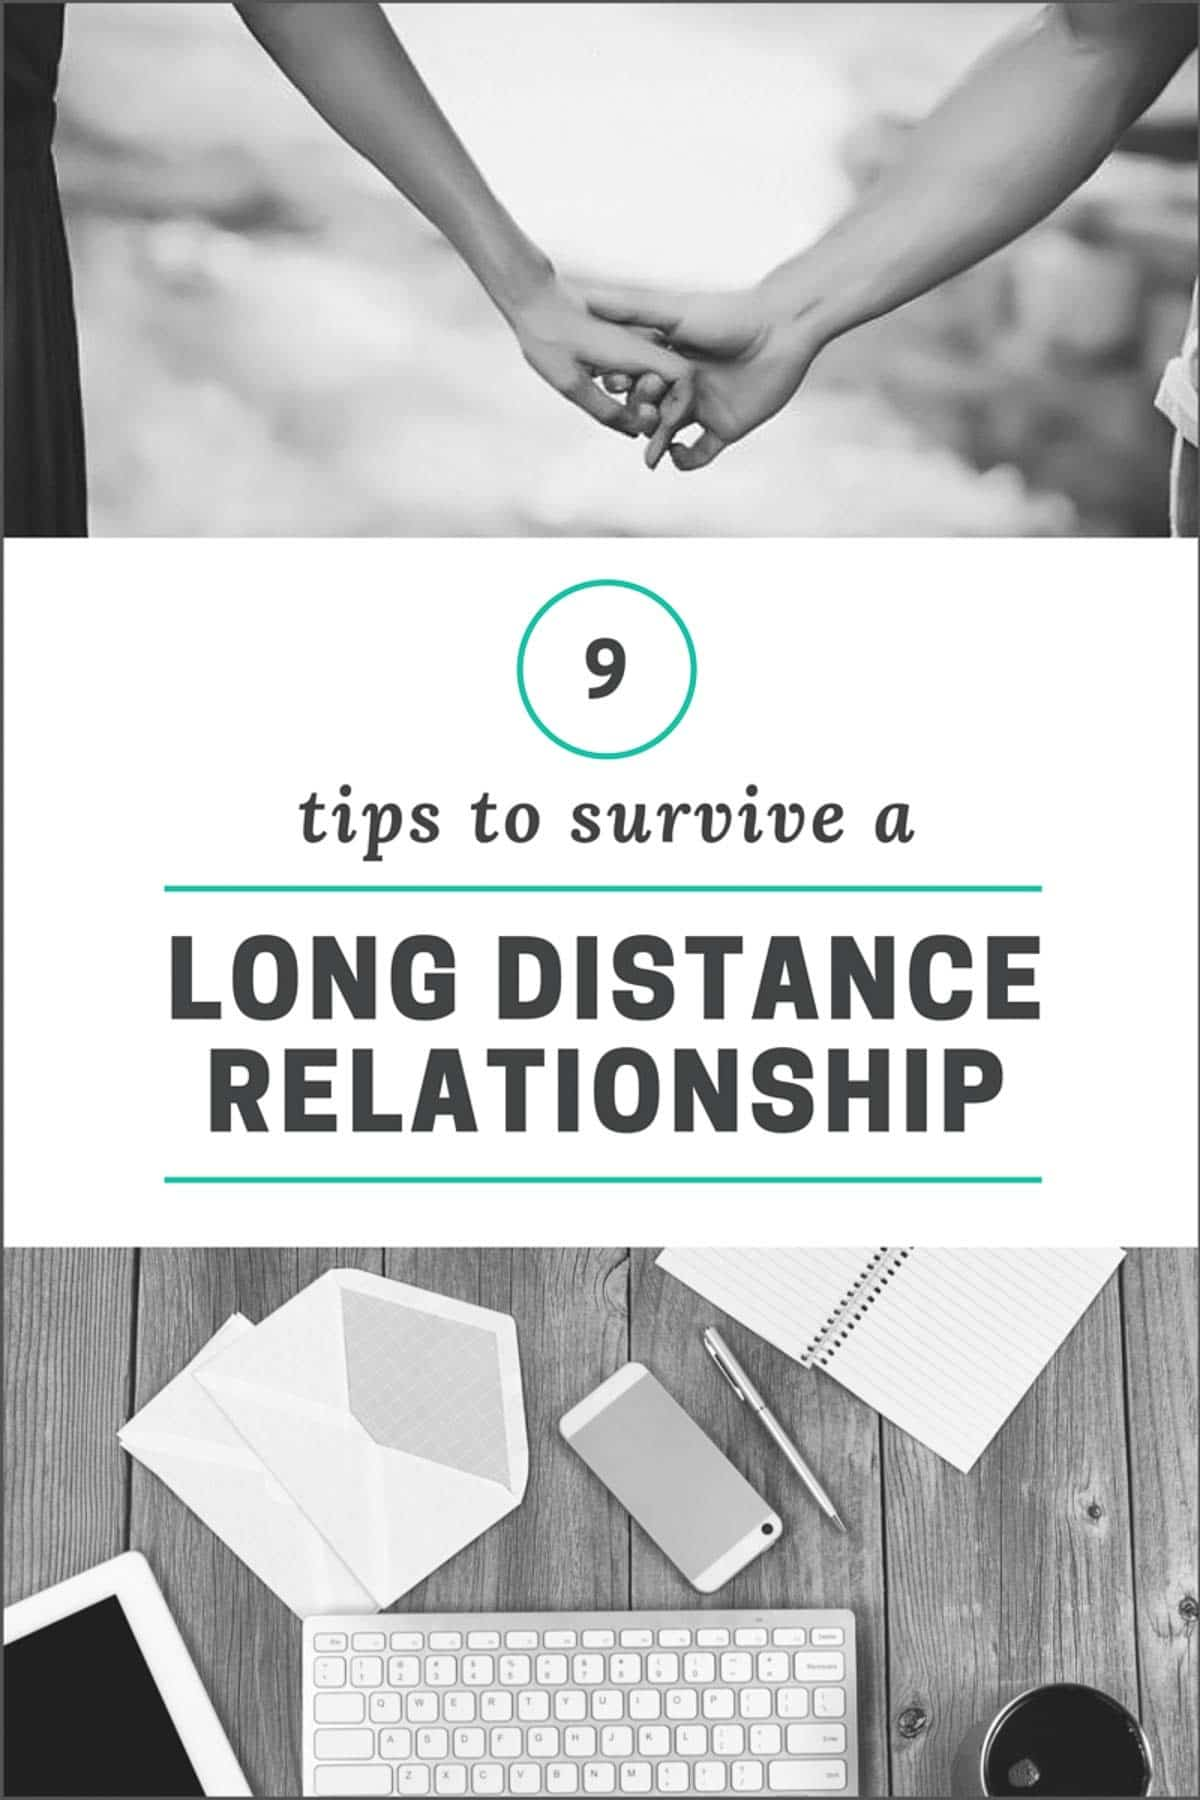 Practical advice and tips for how to make a long distance relationship work. A must read for anyone in a long distance relationship! @wellplated